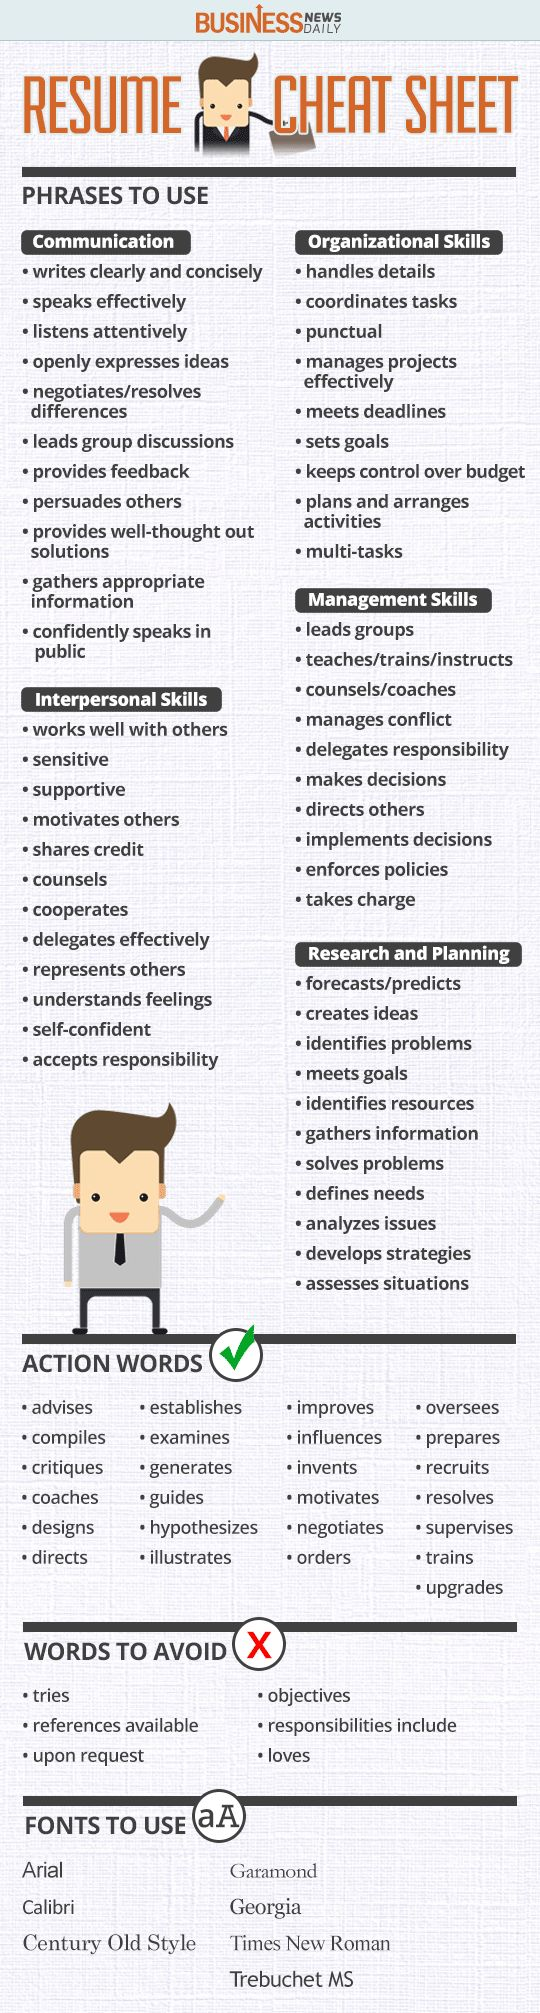 Opposenewapstandardsus  Winning  Ideas About Resume On Pinterest  Cv Format Resume  With Exquisite Resume Cheat Sheet Infographic Andrews Almost Done With A Complete Unit On Employment Which With Archaic Resume My Career Also Cover Letters For Resumes Samples In Addition Hvac Resume Objective And What Font To Use For A Resume As Well As Print Free Resume Additionally What Is The Meaning Of Resume From Pinterestcom With Opposenewapstandardsus  Exquisite  Ideas About Resume On Pinterest  Cv Format Resume  With Archaic Resume Cheat Sheet Infographic Andrews Almost Done With A Complete Unit On Employment Which And Winning Resume My Career Also Cover Letters For Resumes Samples In Addition Hvac Resume Objective From Pinterestcom